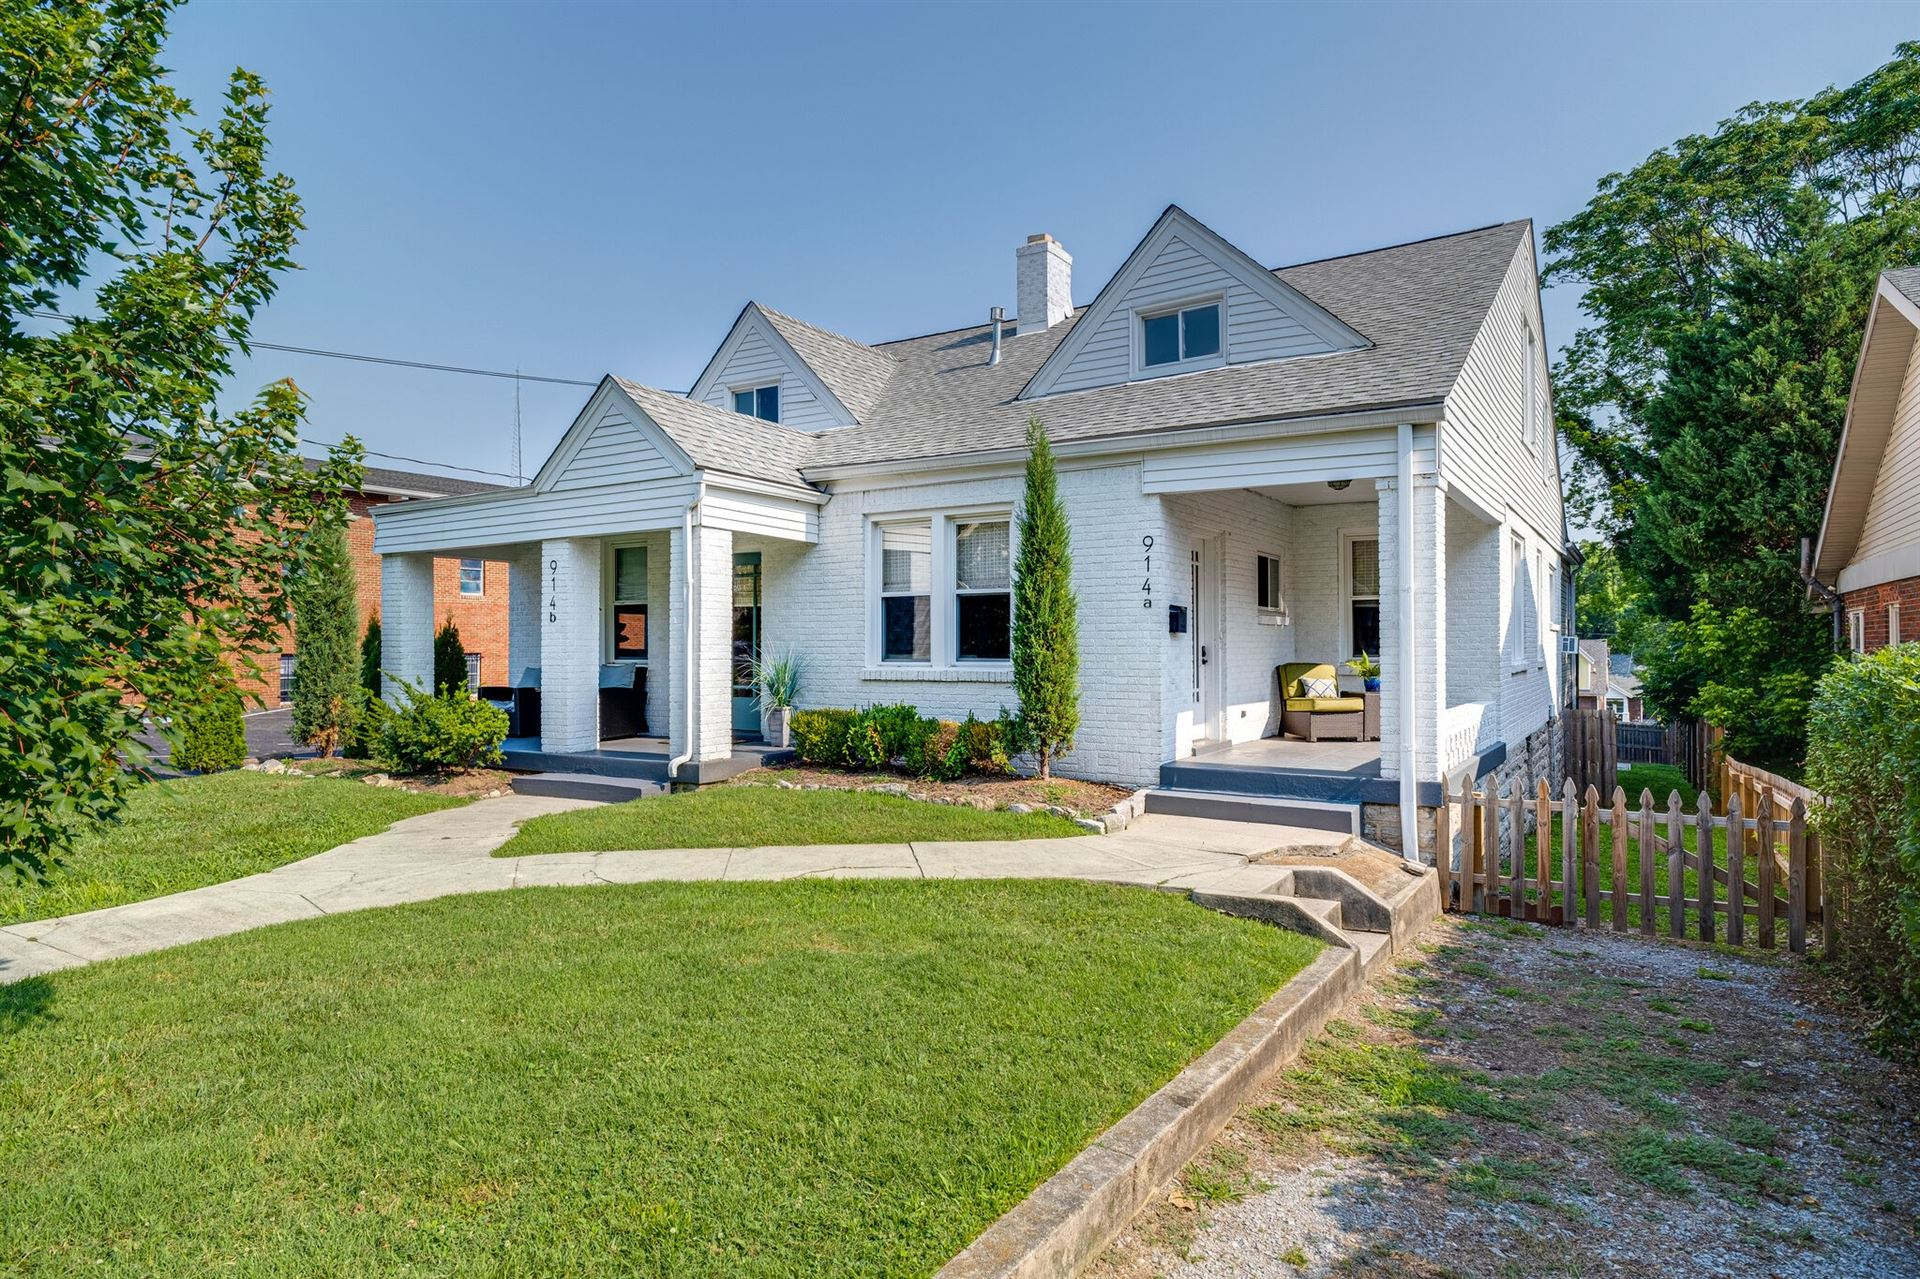 Photo of 914 Caruthers Ave, Nashville, TN 37204 (MLS # 2276731)